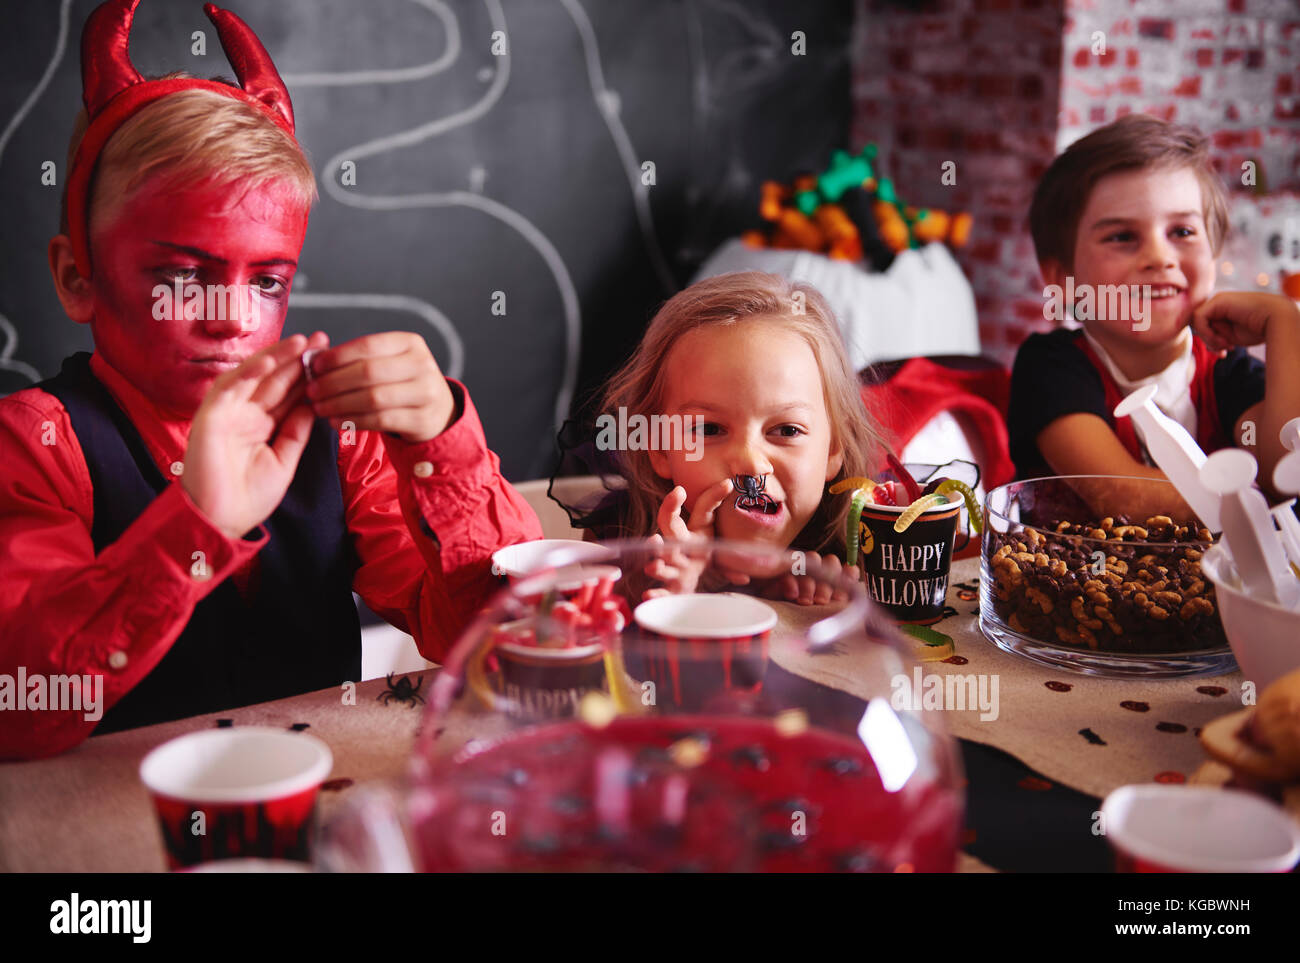 Nonsense while eating at halloween party - Stock Image